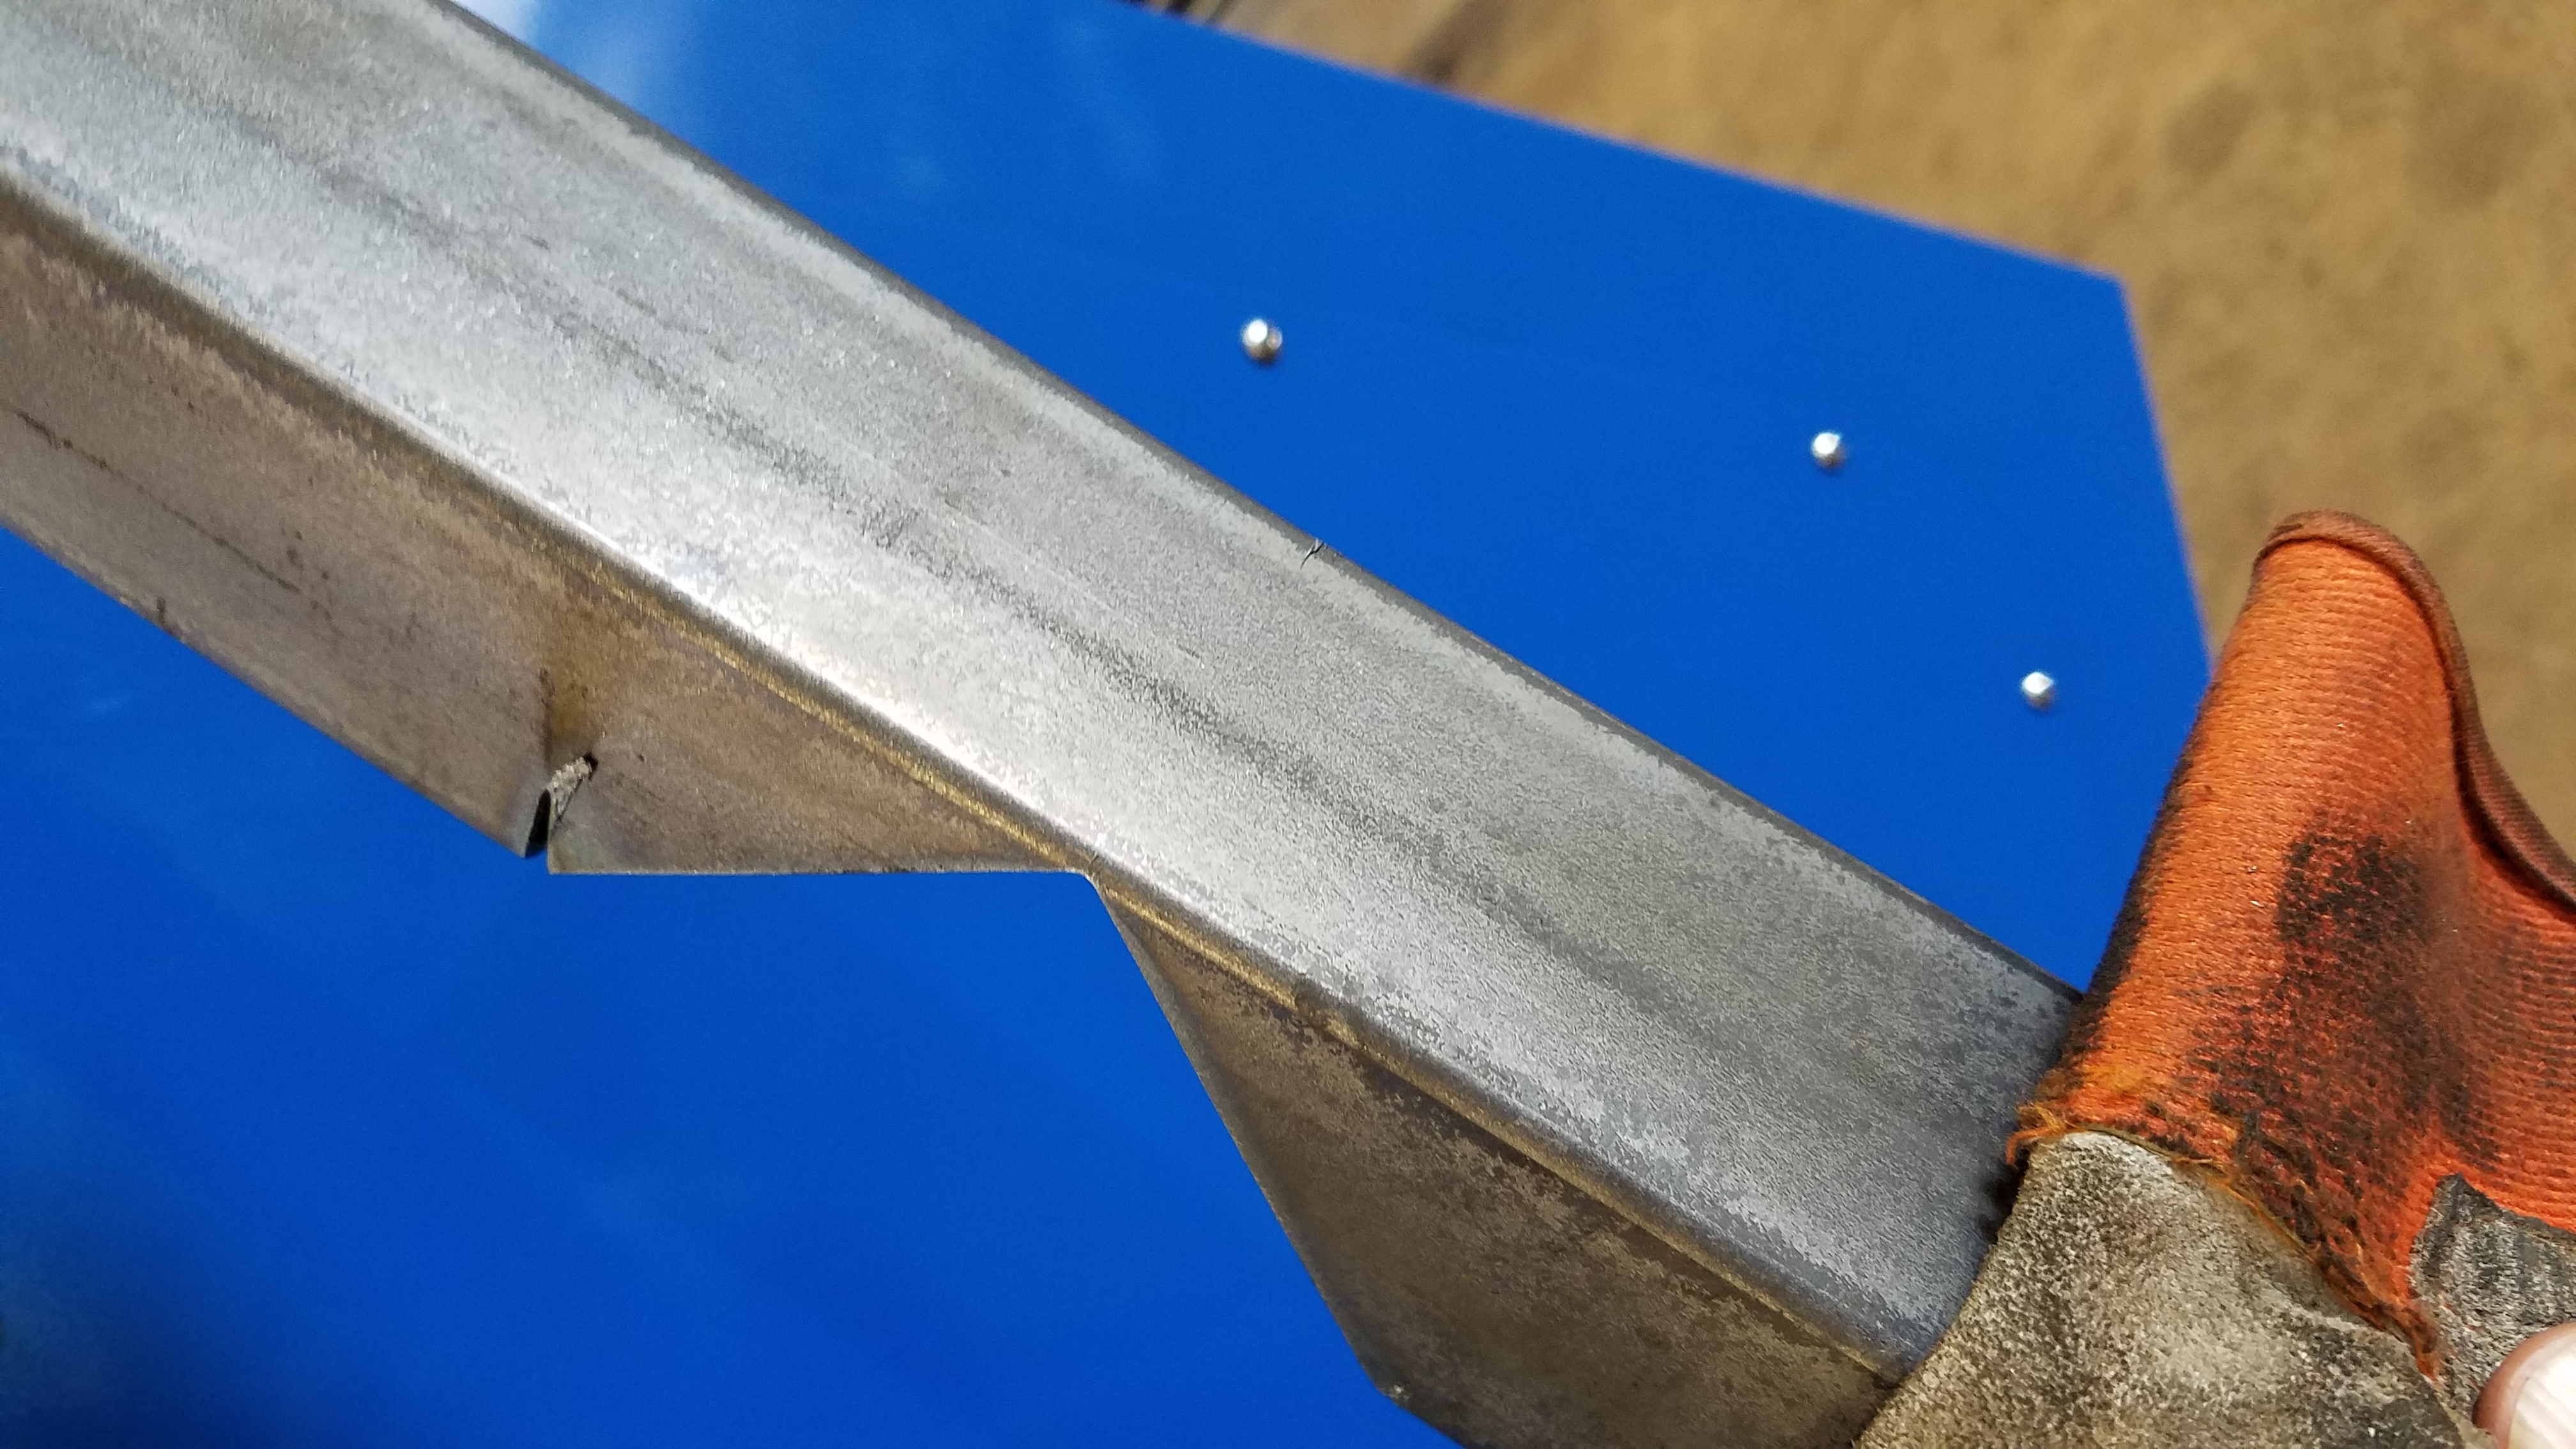 Bend Notching